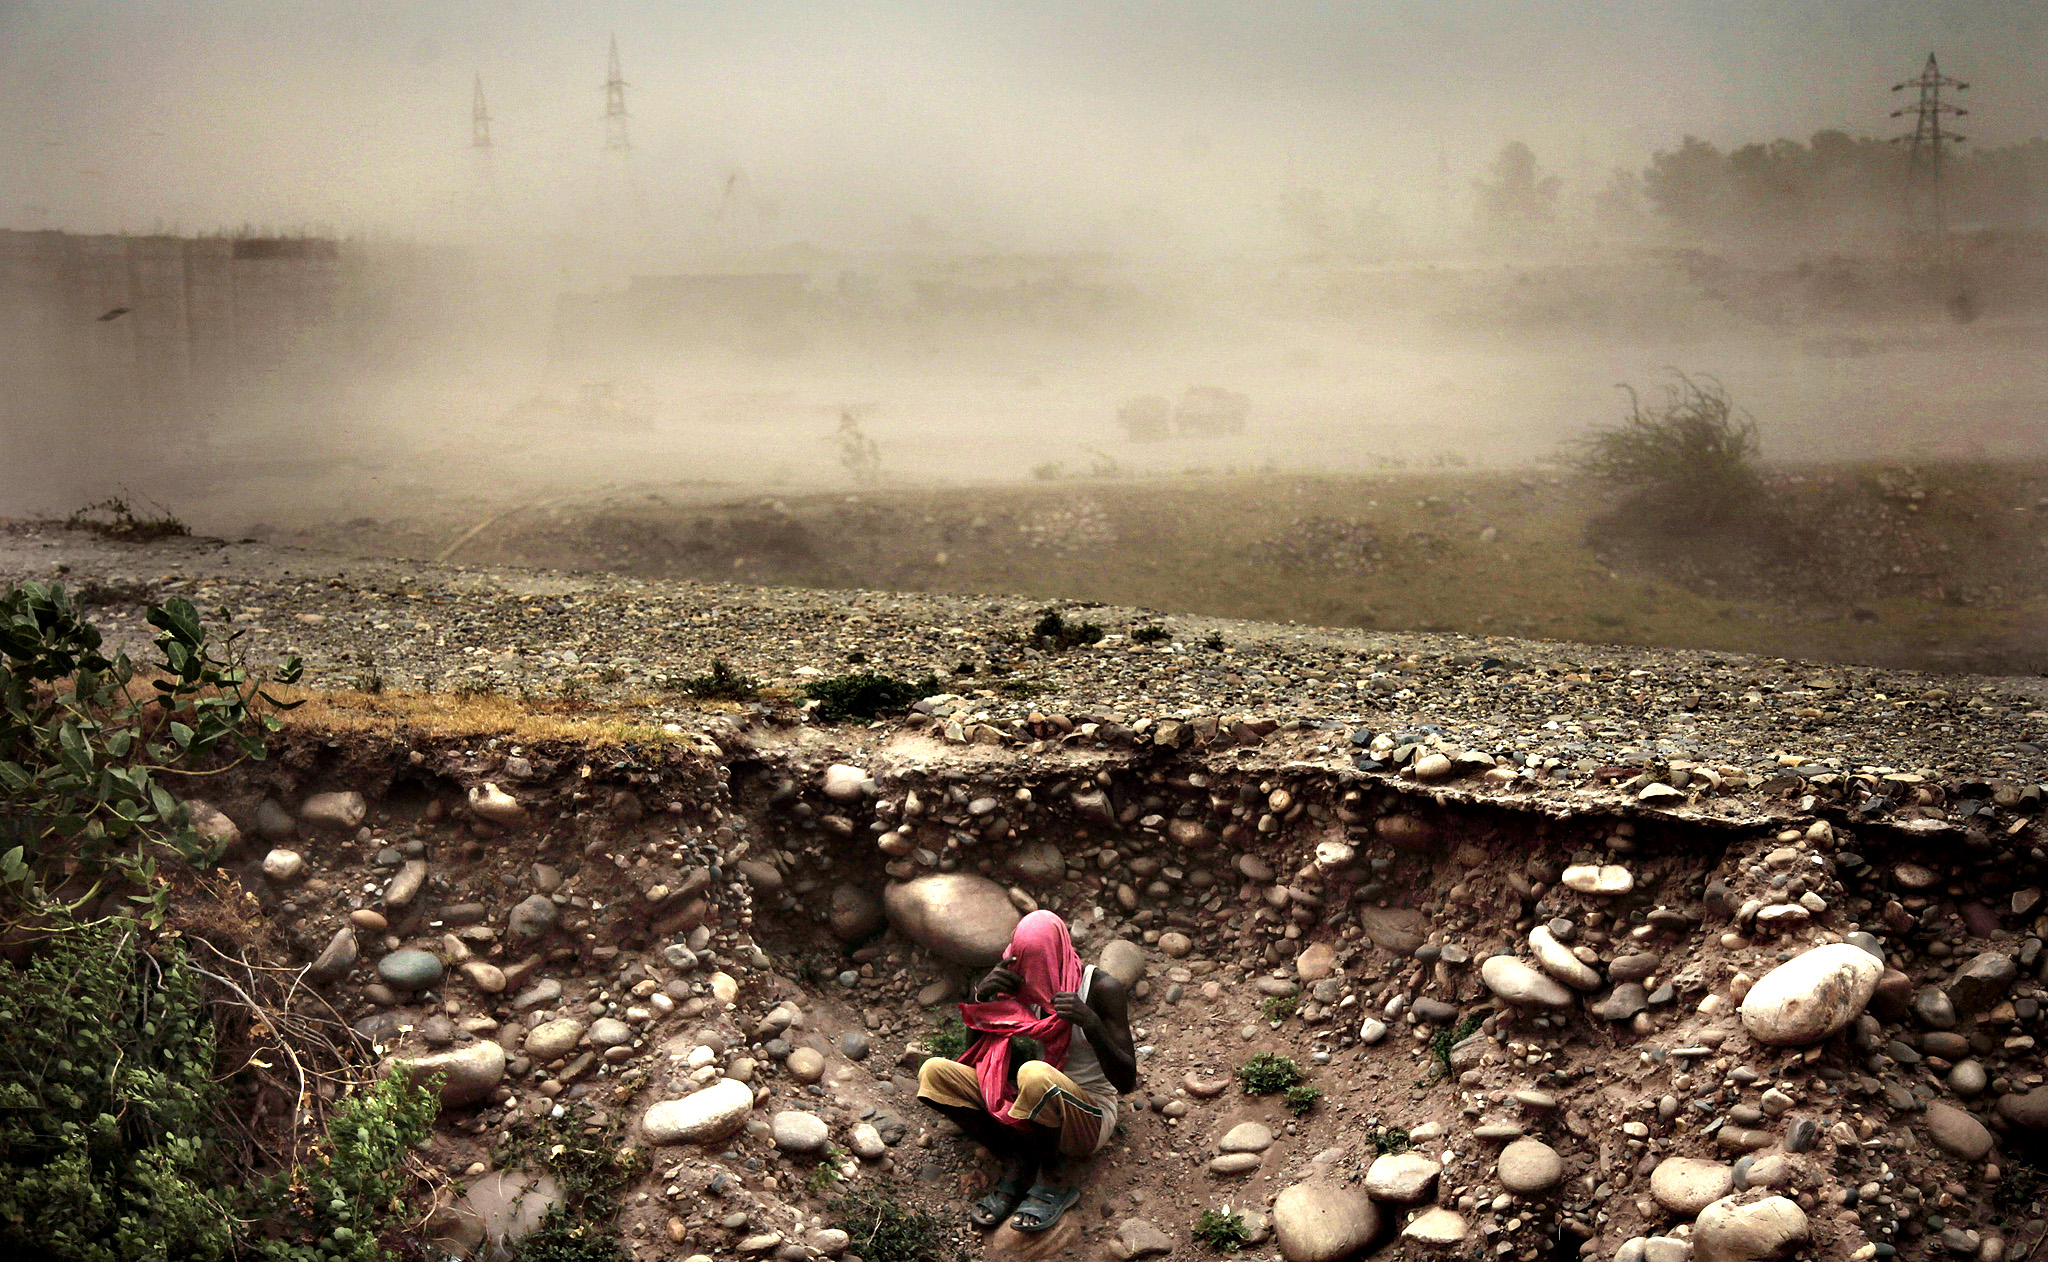 An Indian man sits beneath the road level with his face covered during a powerful dust storm in Jammu, India, Monday, June 16, 2014.